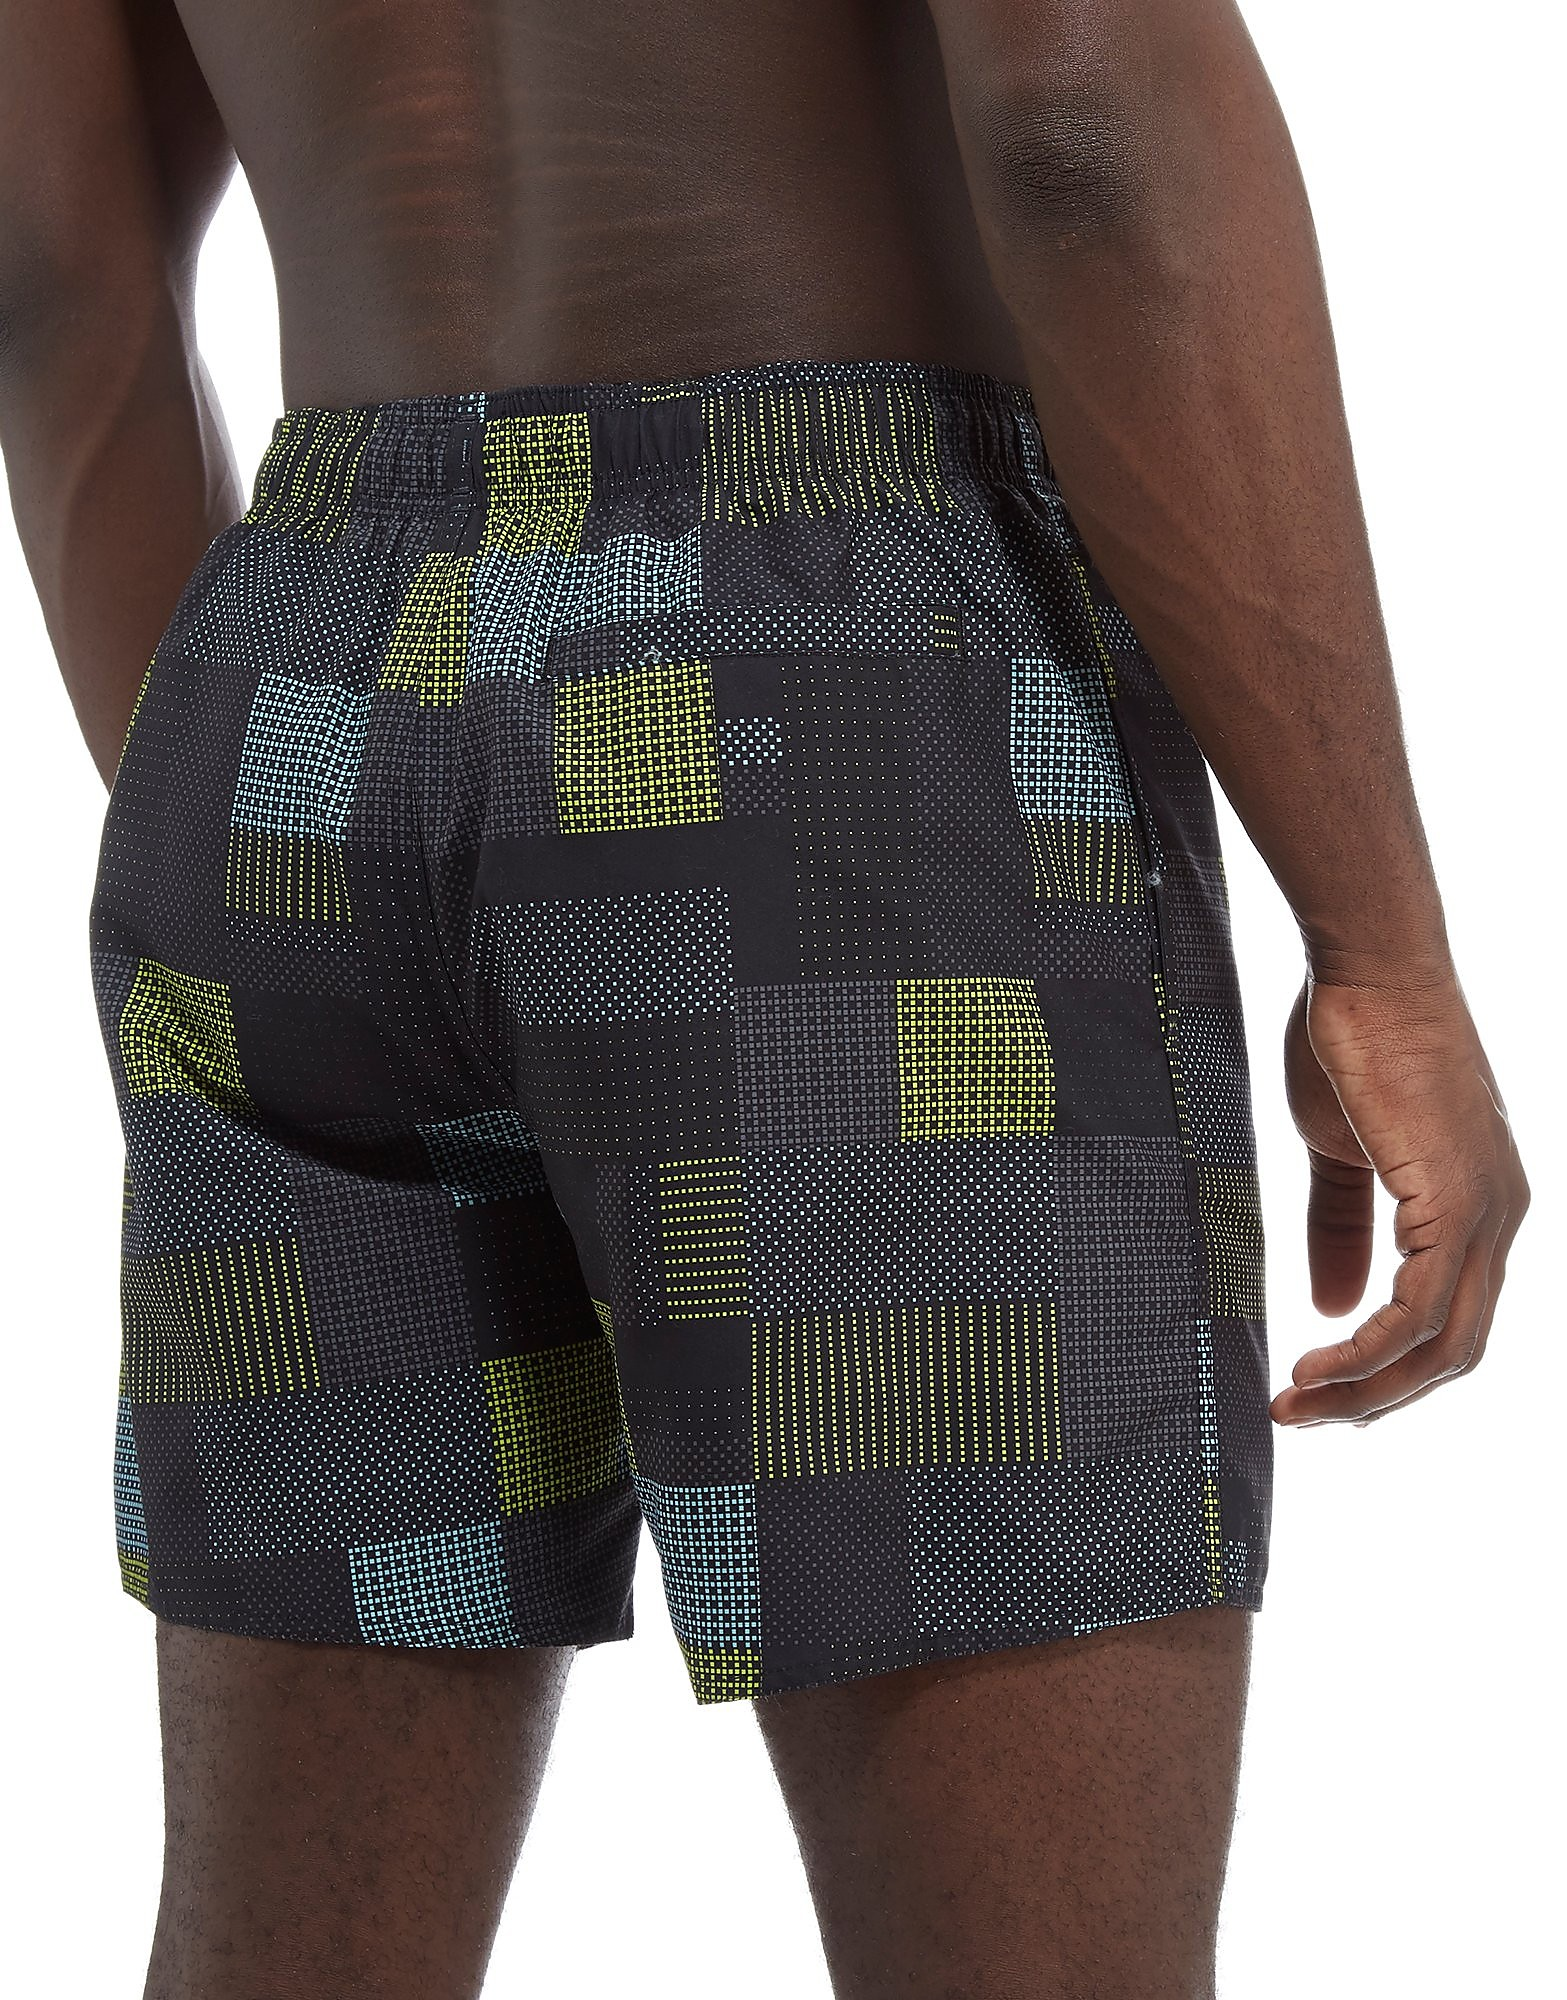 Speedo Printed Check Leisure Swim Shorts